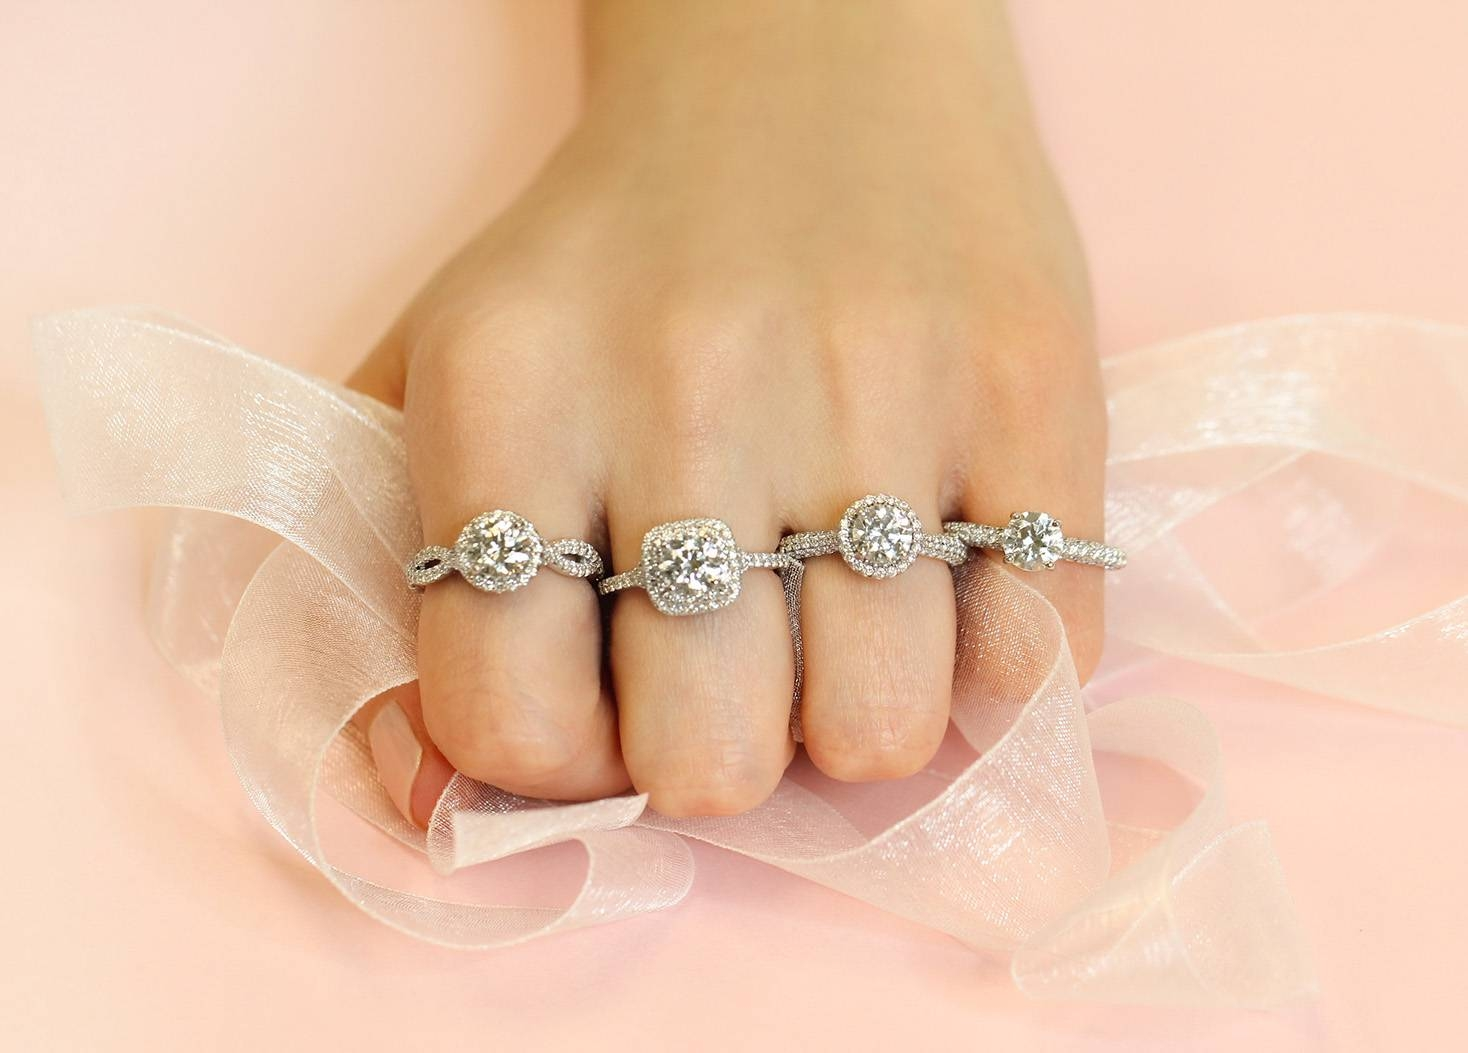 The Best Diamond Shape For Your Hand Size | Ritani Intended For Small Size Engagement Rings (View 9 of 15)